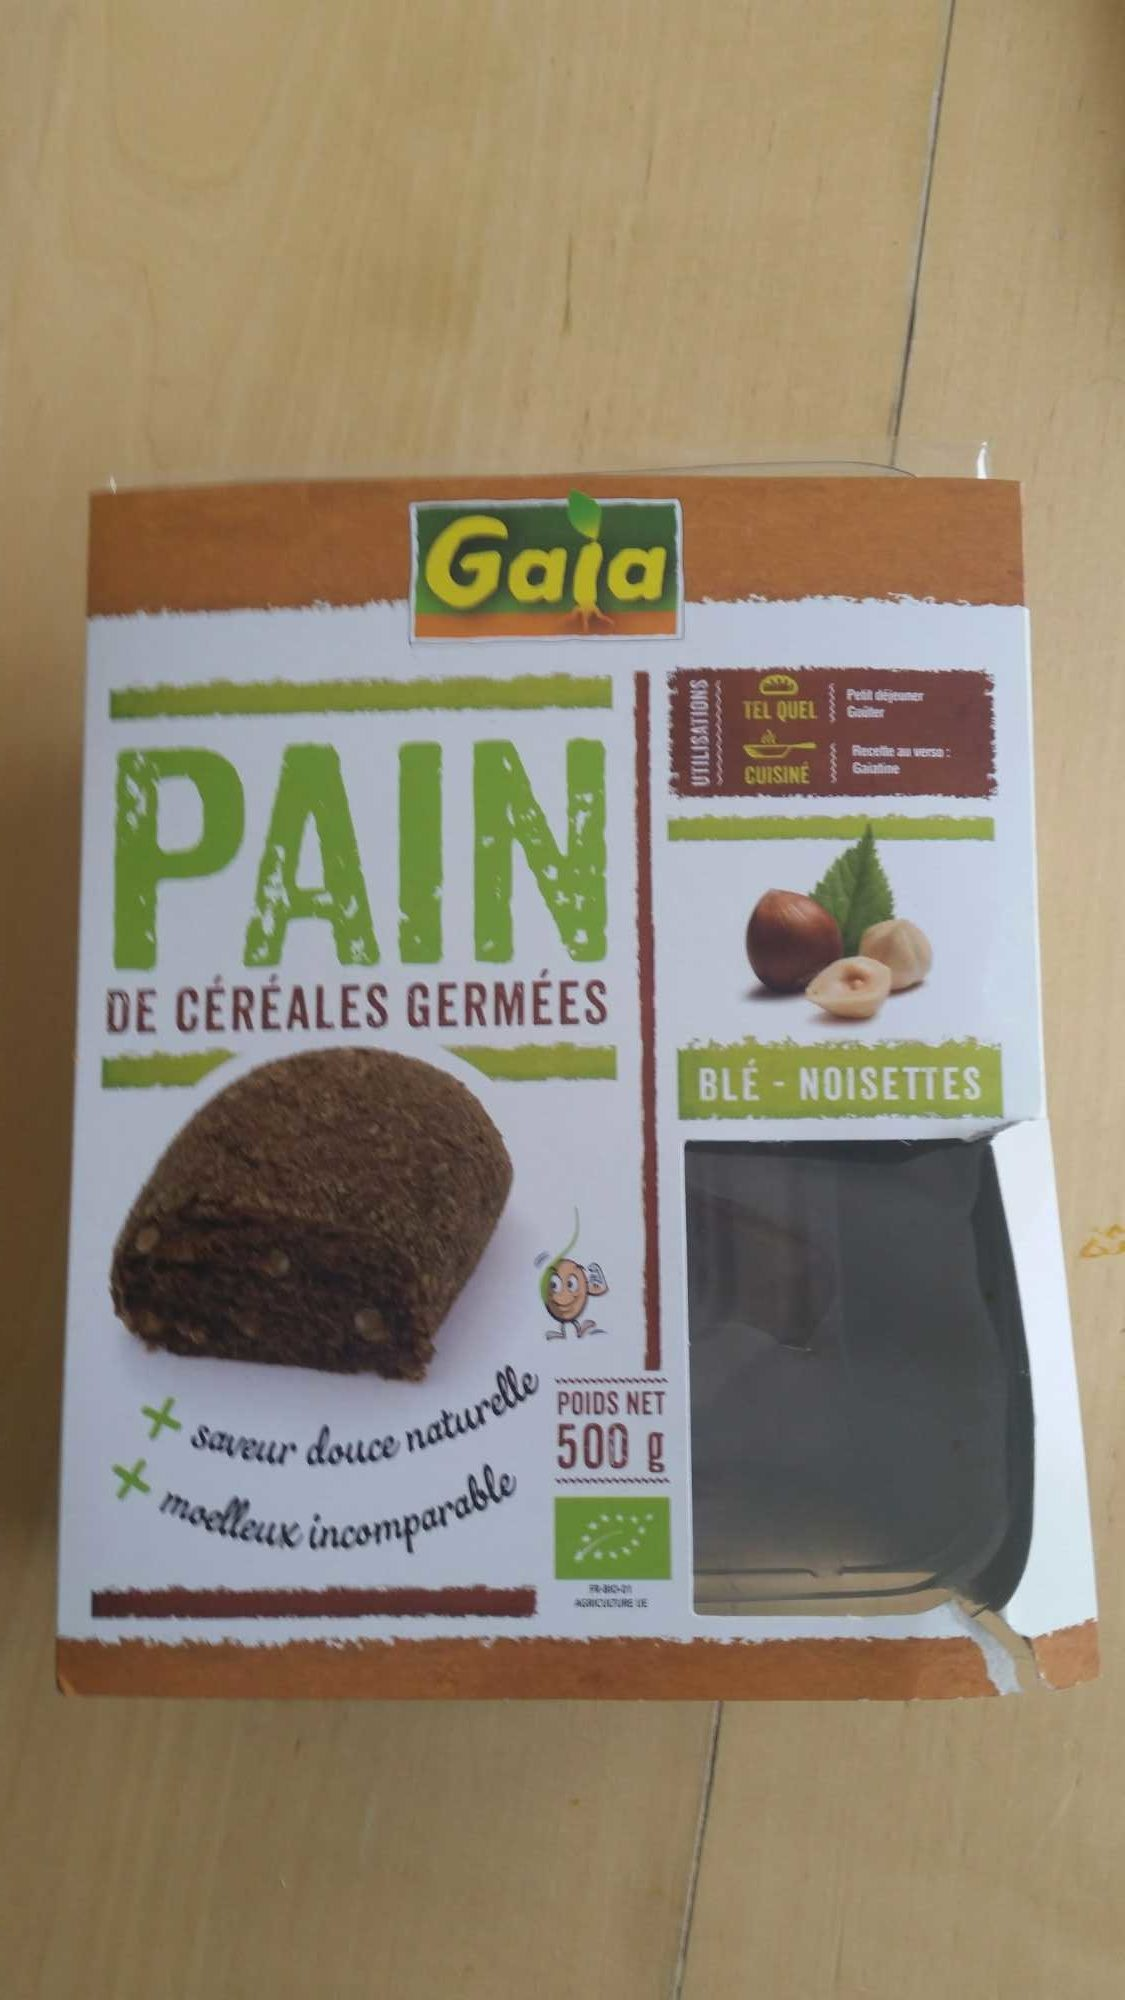 Pain aux cereales germees